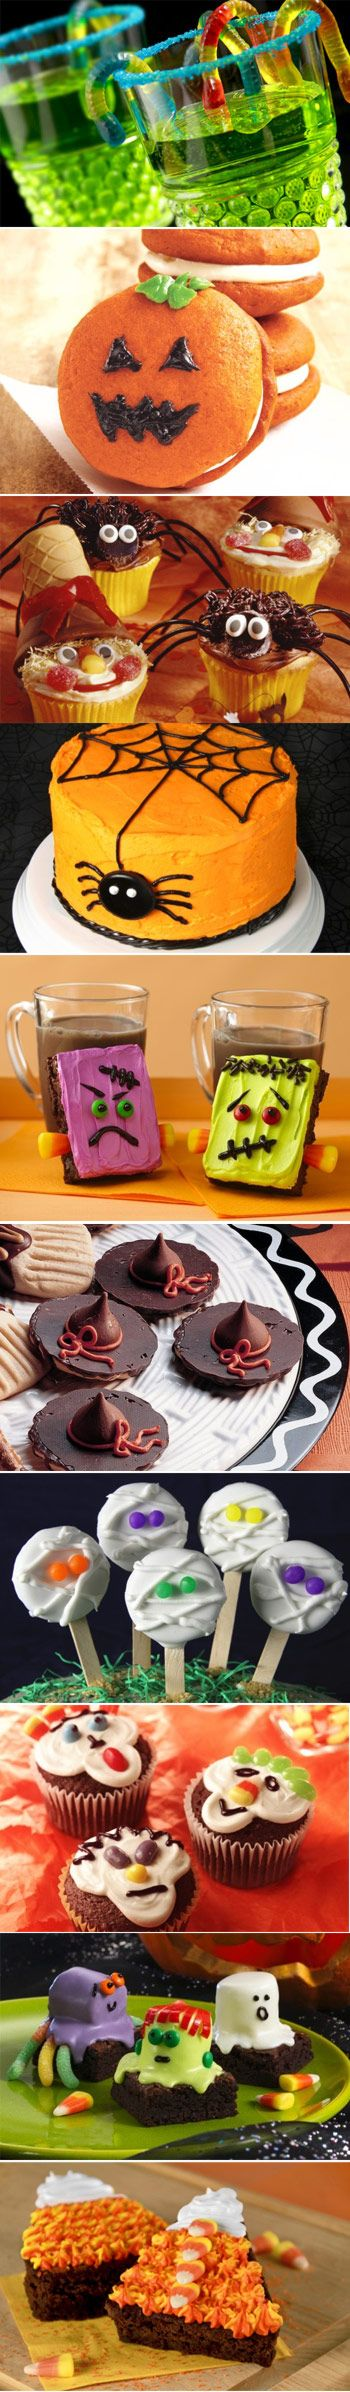 Tons of Halloween Treats!